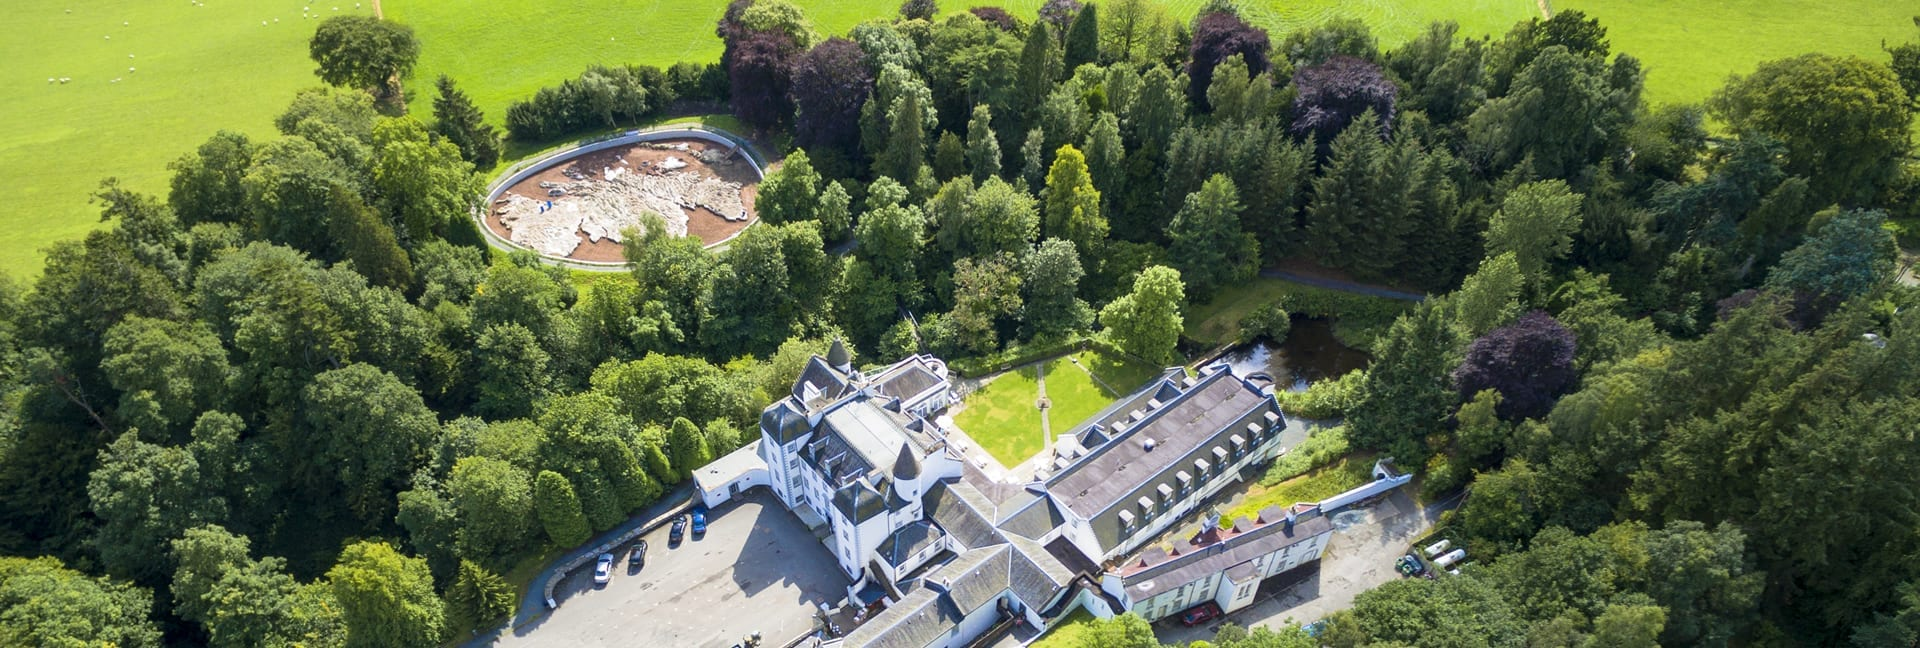 An aerial view of Barony Castle